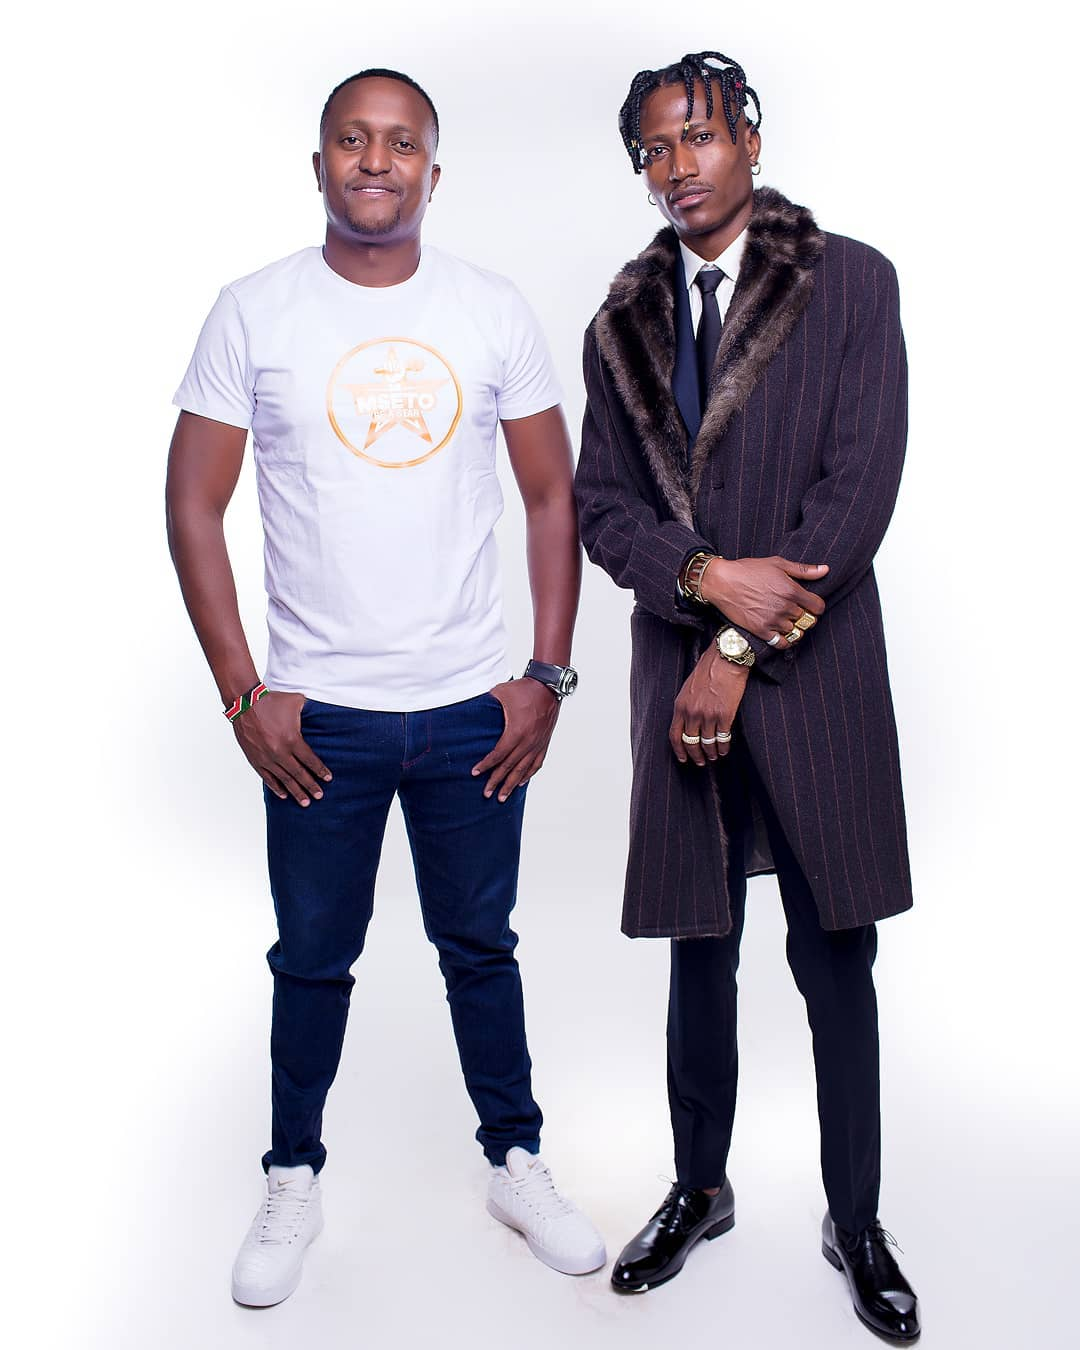 Octopizzo with Willy M Tuva